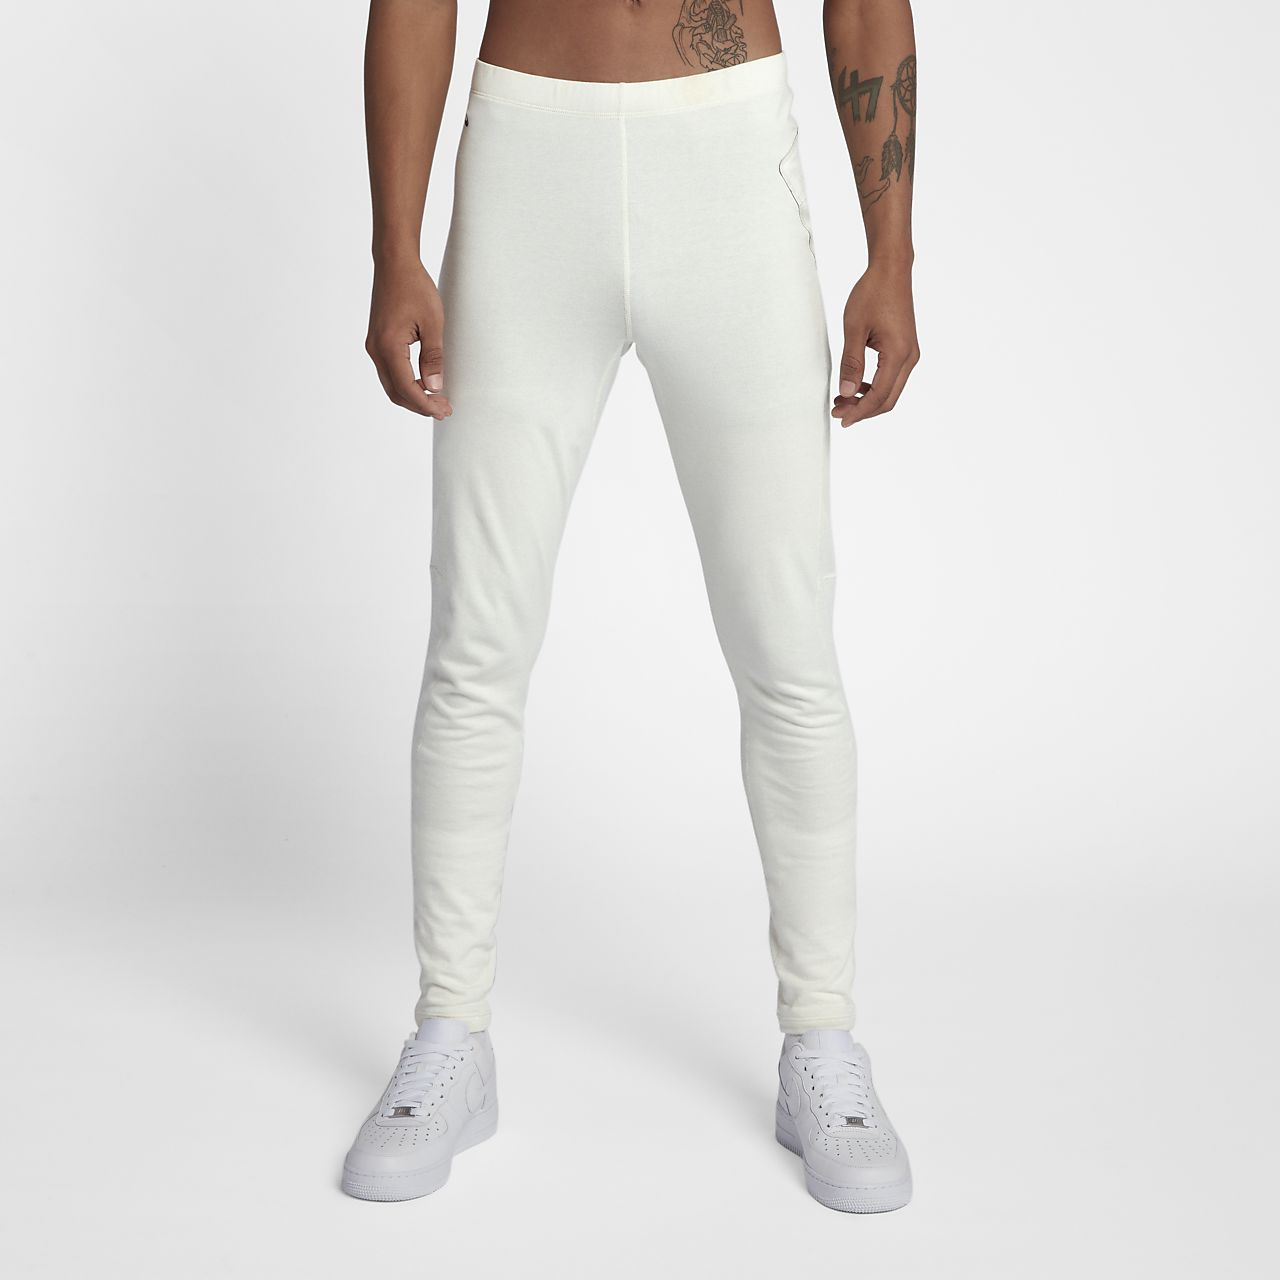 NikeLab AAE 2.0 Men's Leggings